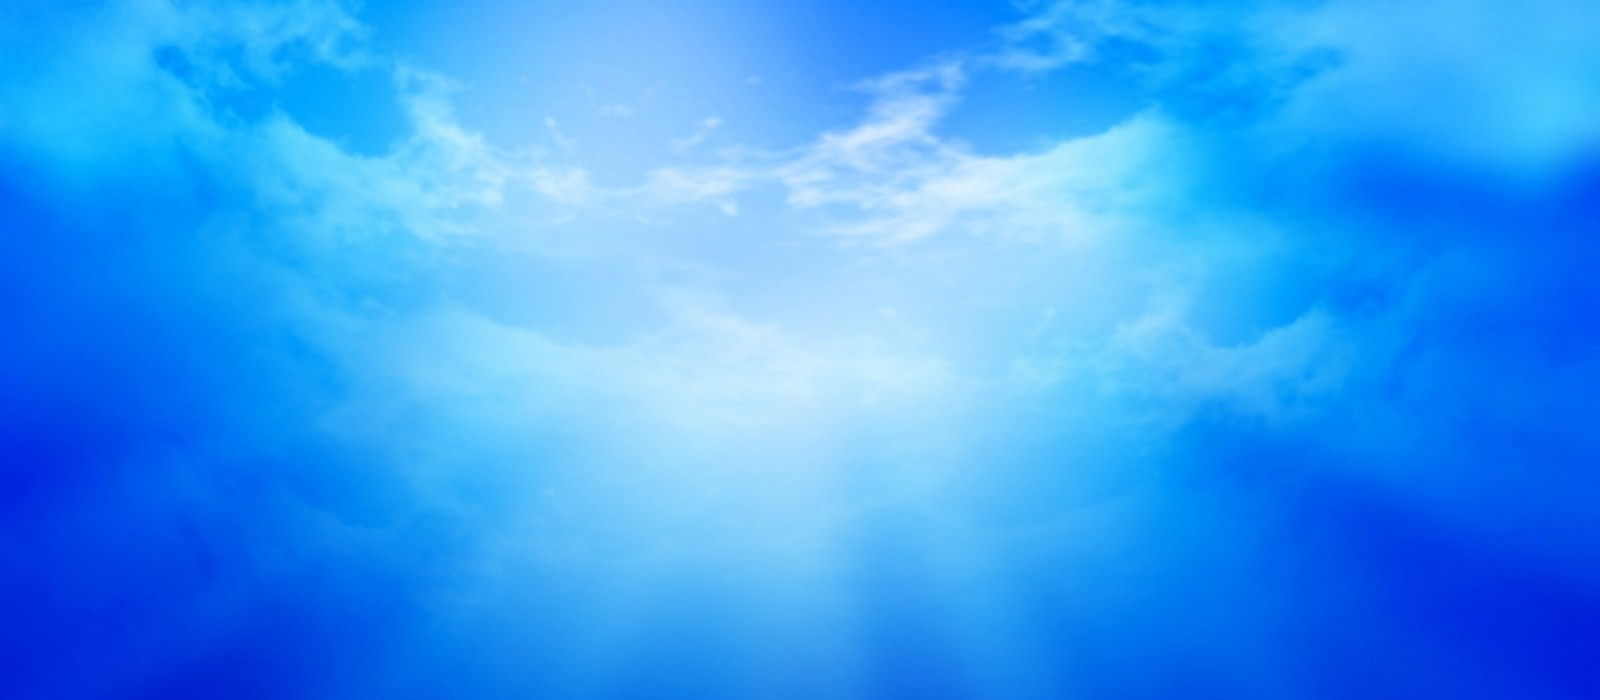 sky-wallpapers-hd-5-e1377574275995